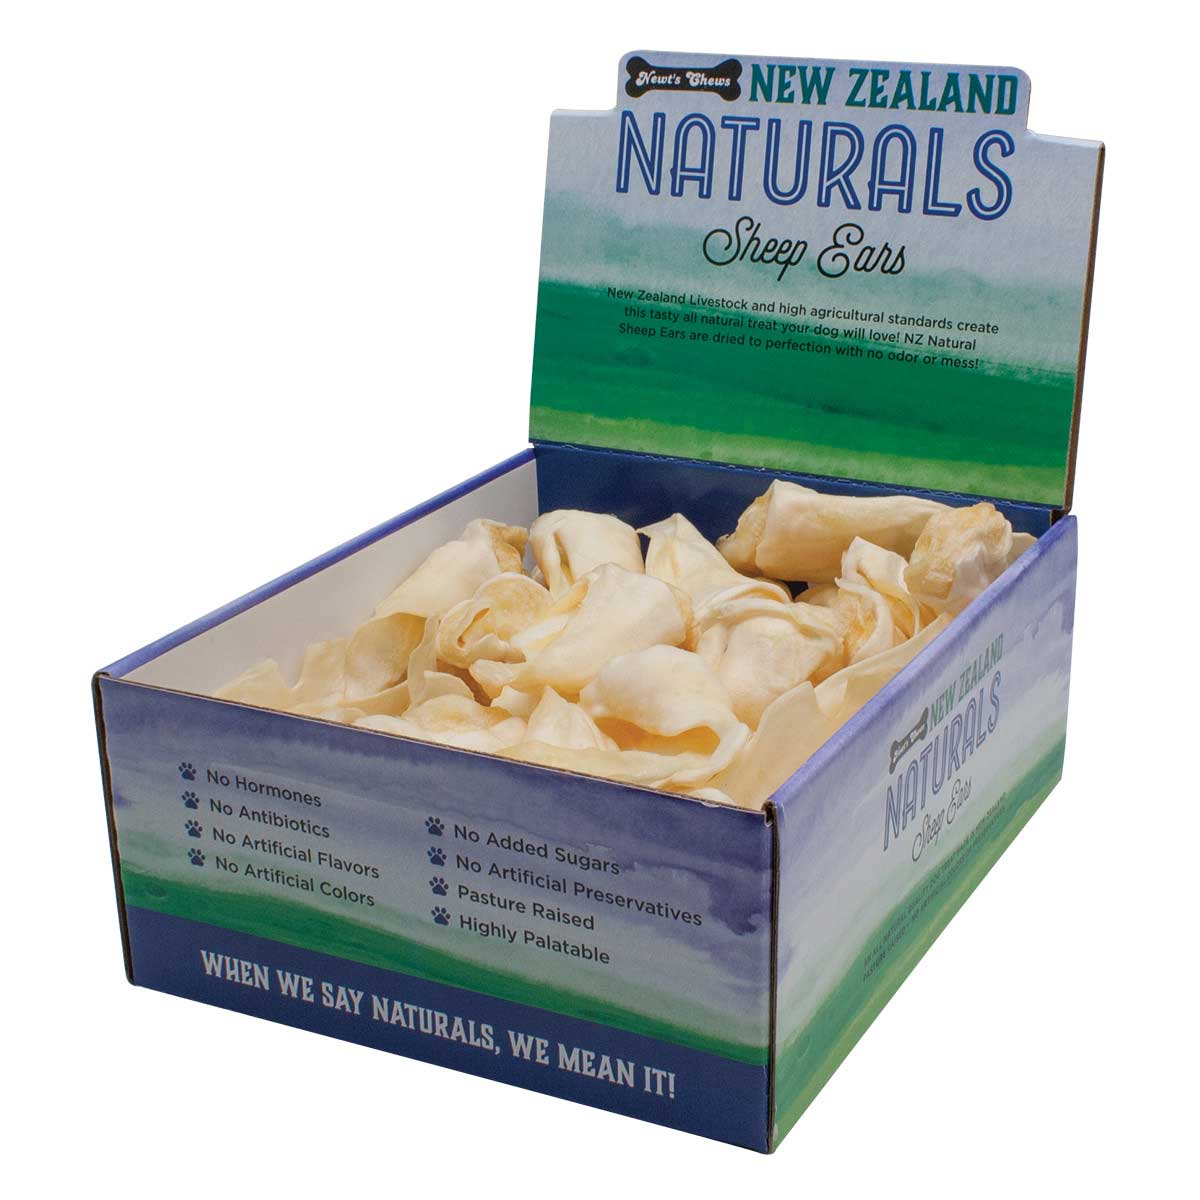 New Zeland Naturals Sheep Ears Display Box 50 Count